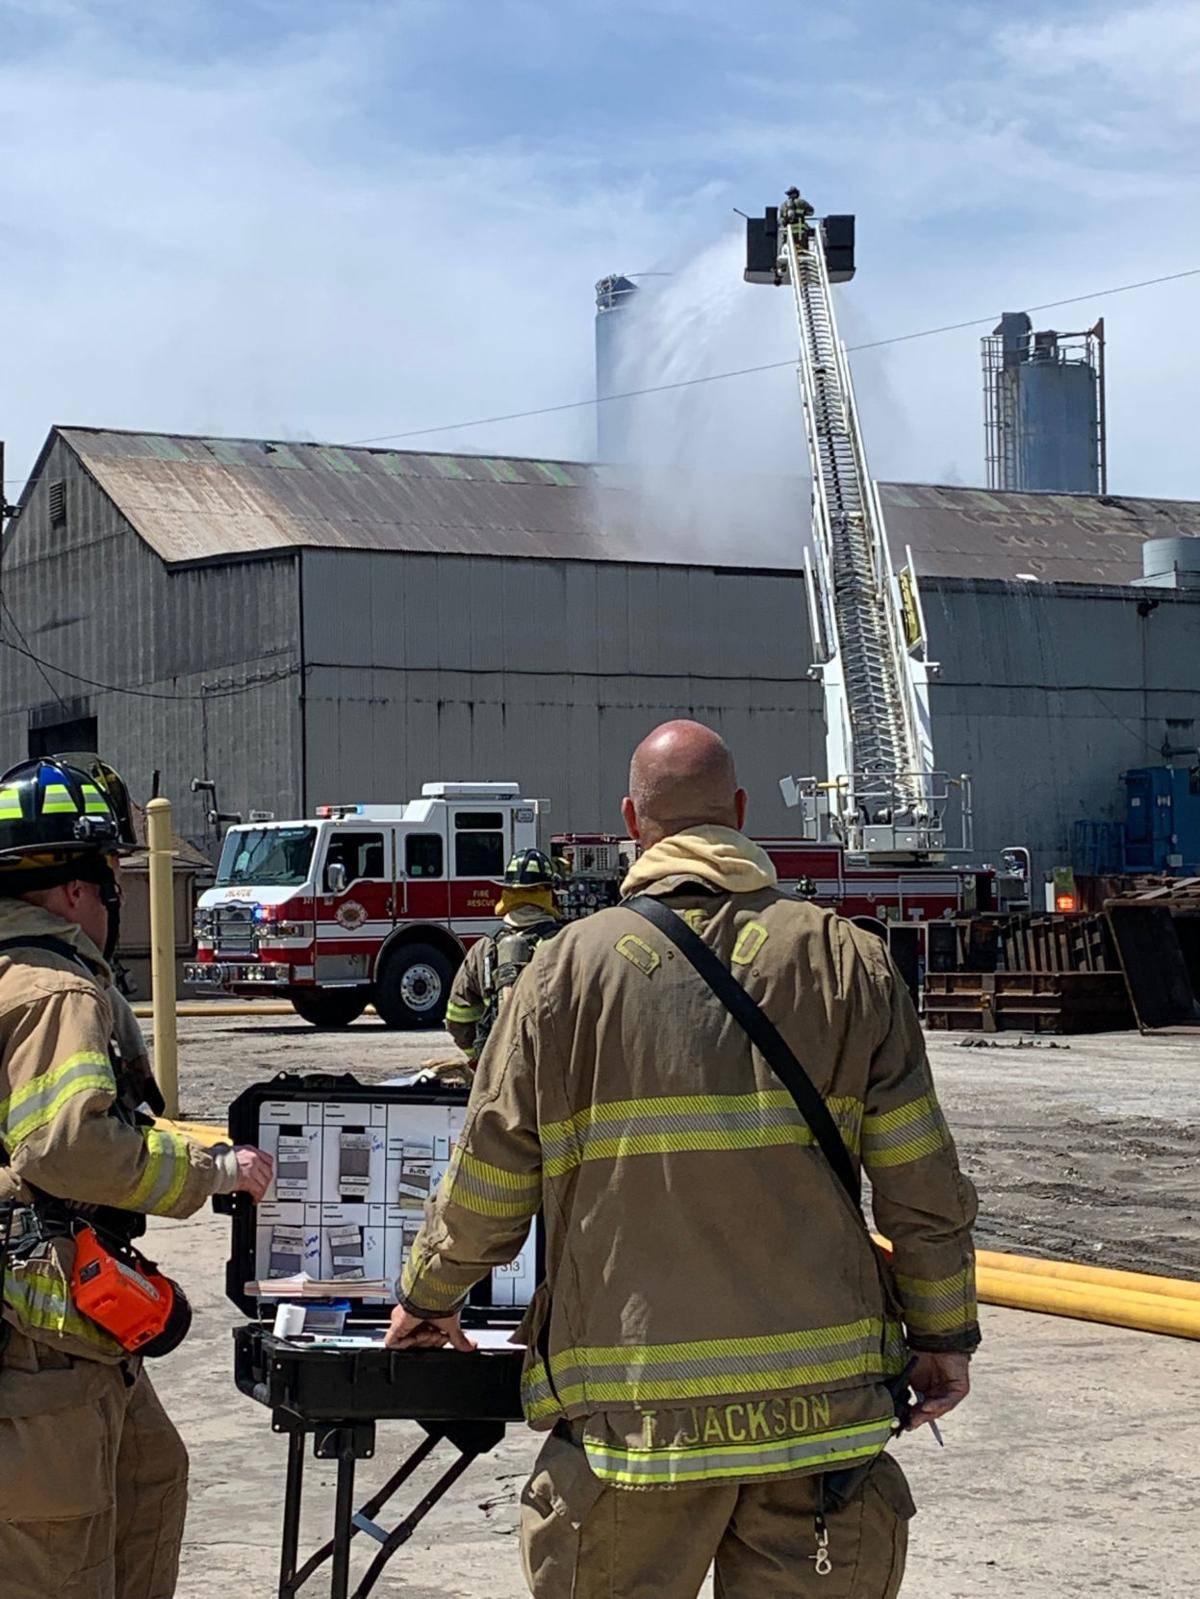 Decatur Foundry fire